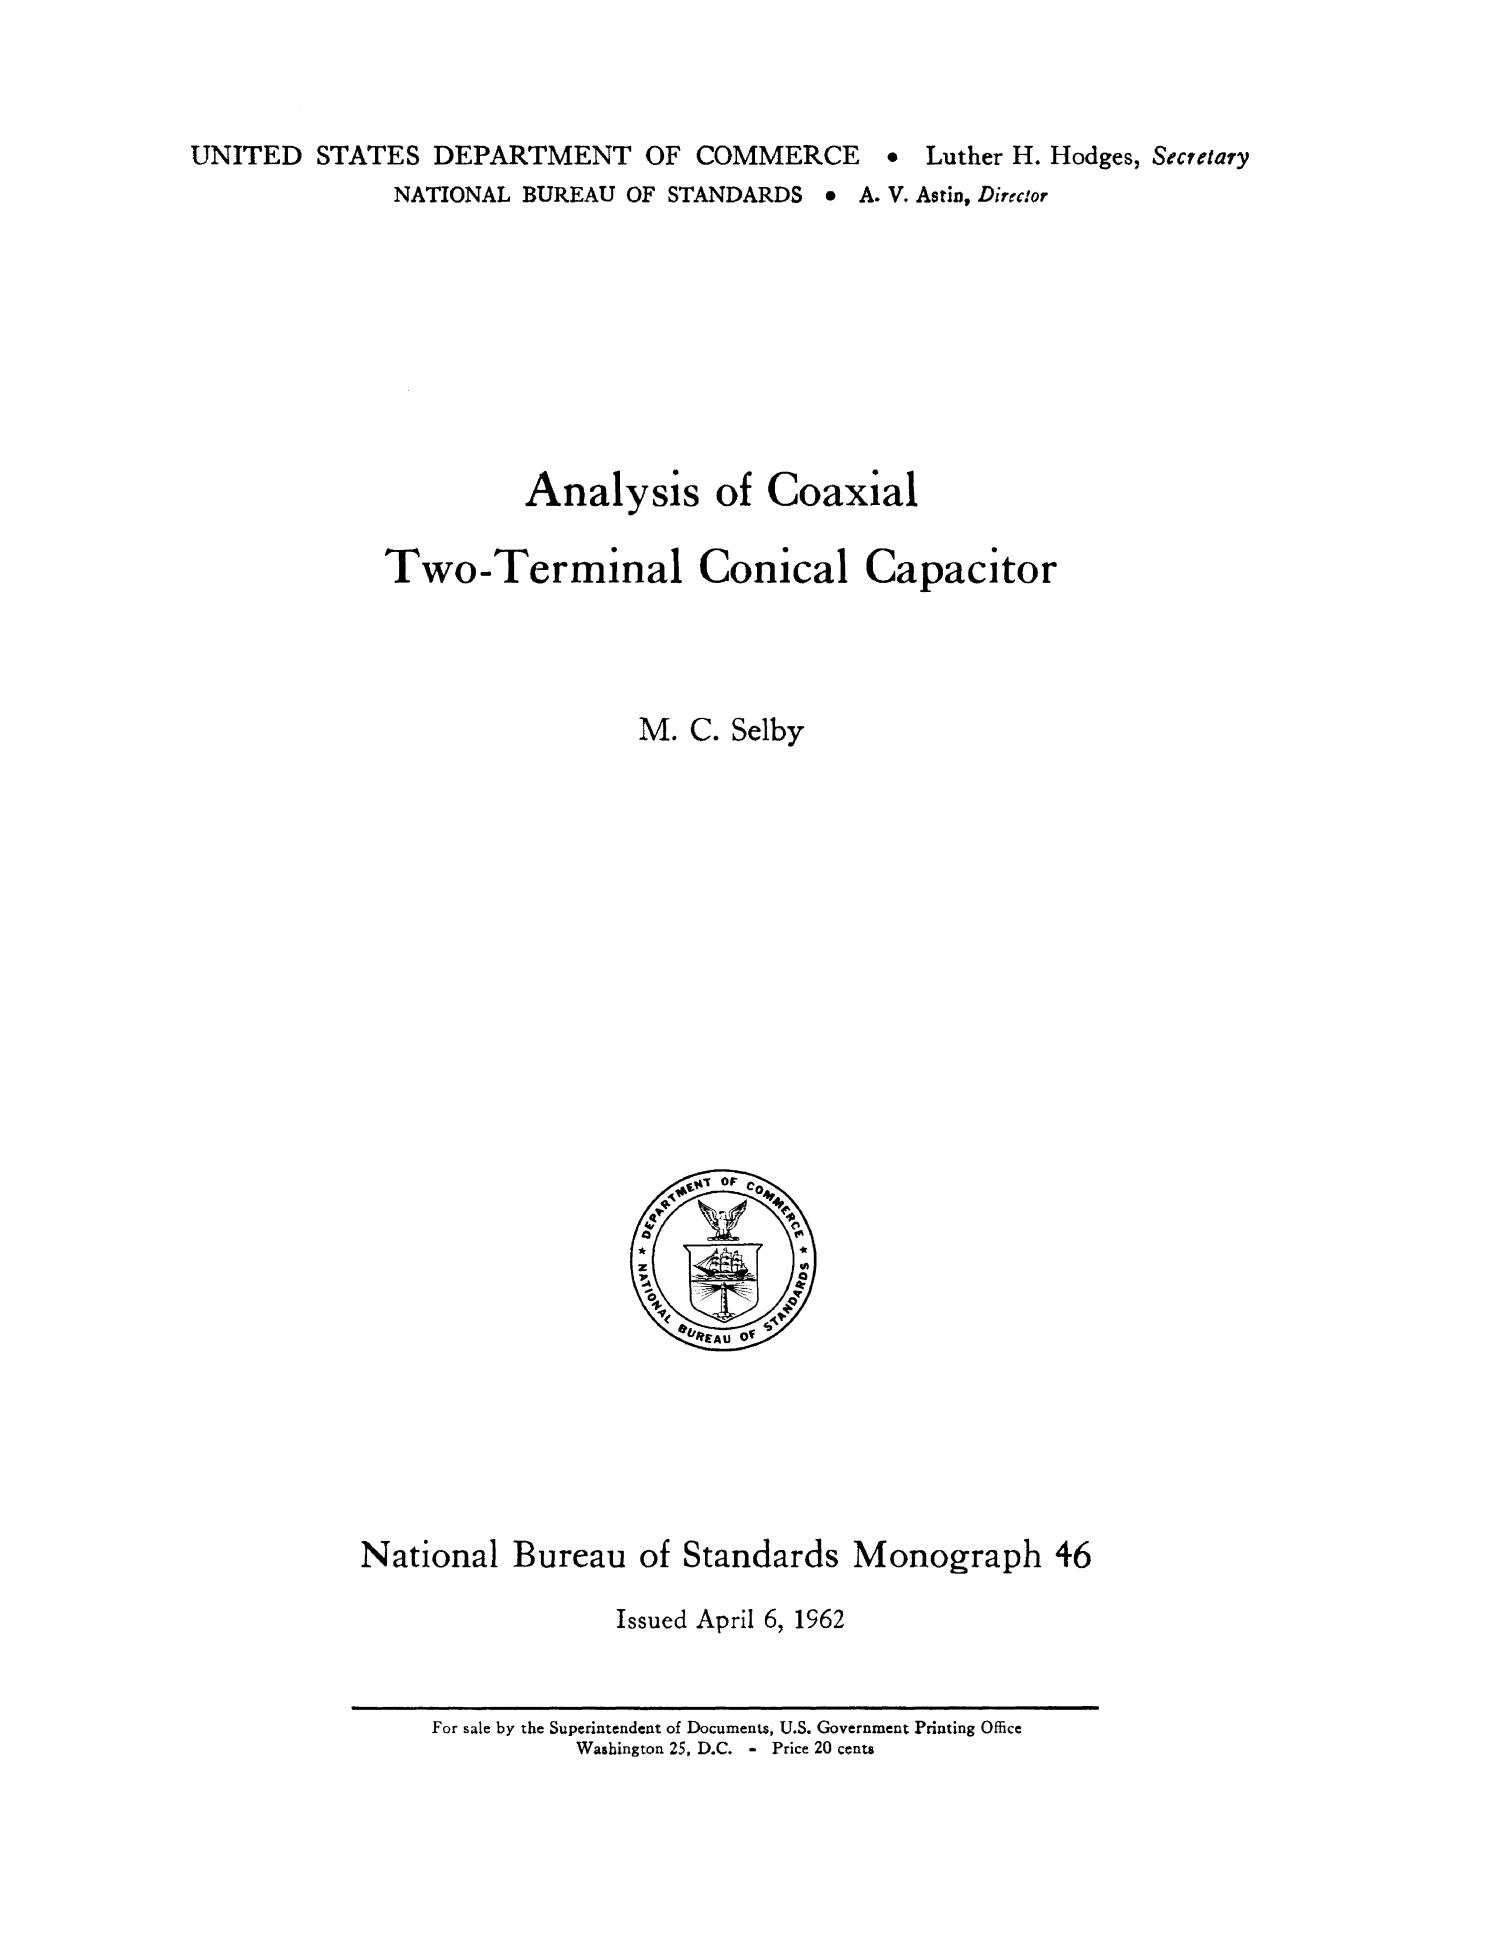 Analysis of Coaxial Two-Terminal Conical Capacitor                                                                                                      i